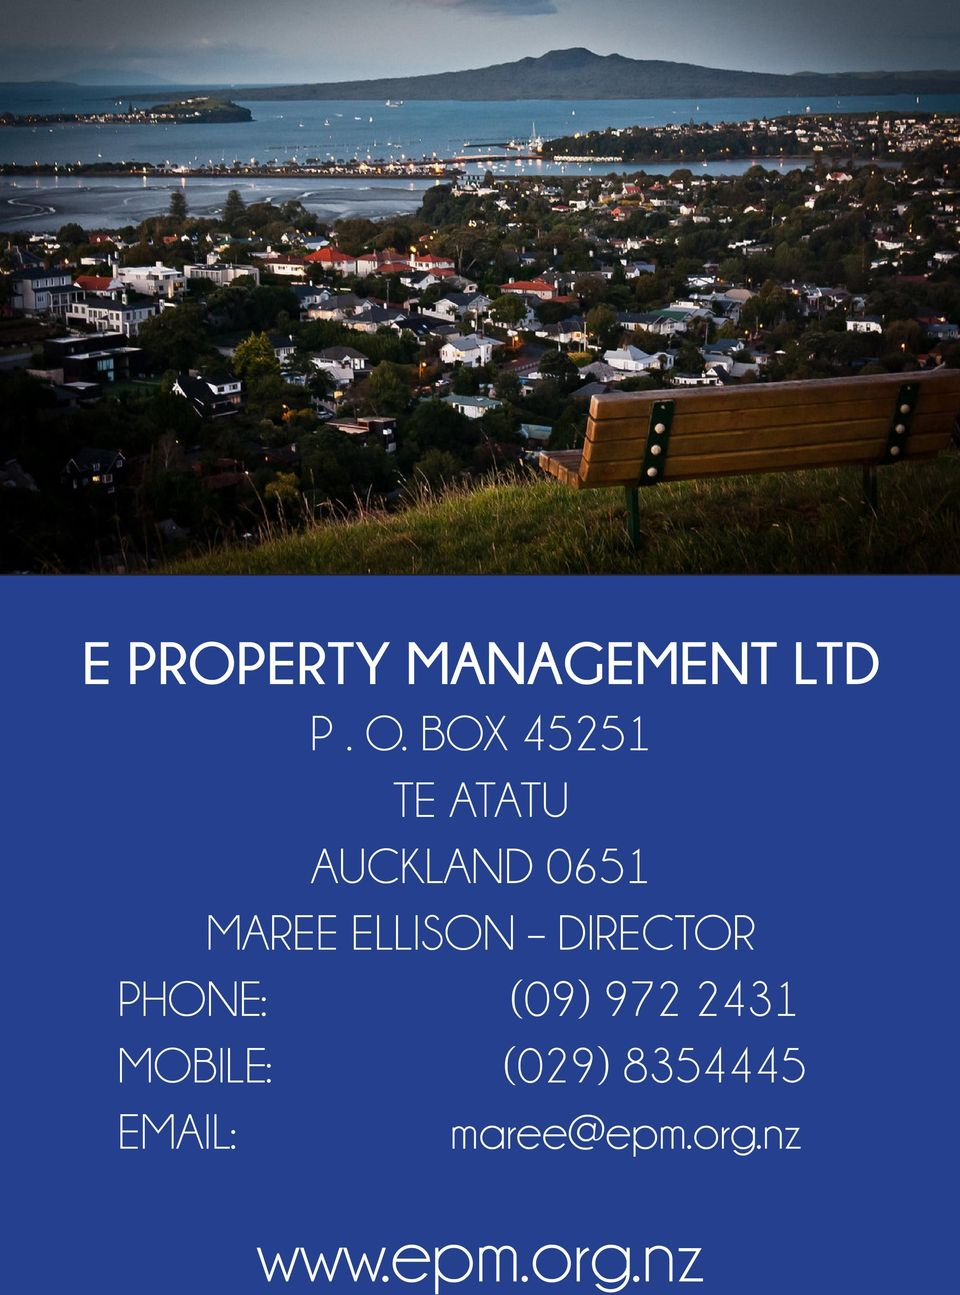 MOBILE: (029) 8354445 P. O. BOX 45251 EMAIL: maree@epm.org.